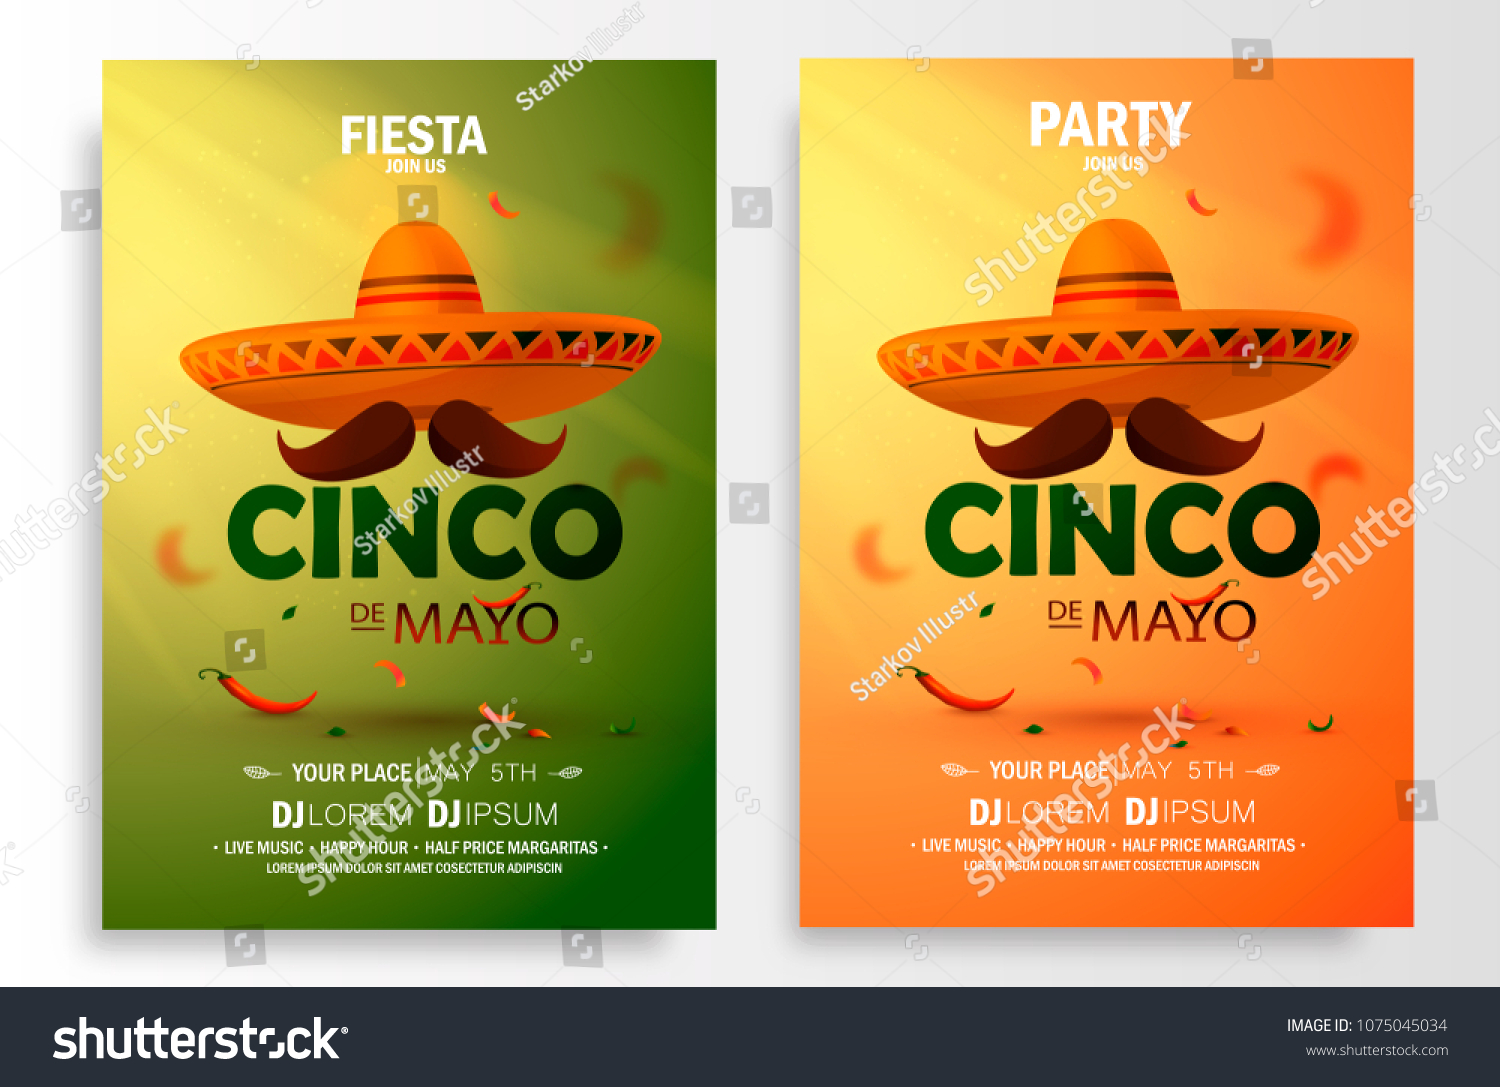 cinco de mayo poster design marketing stock vector royalty free